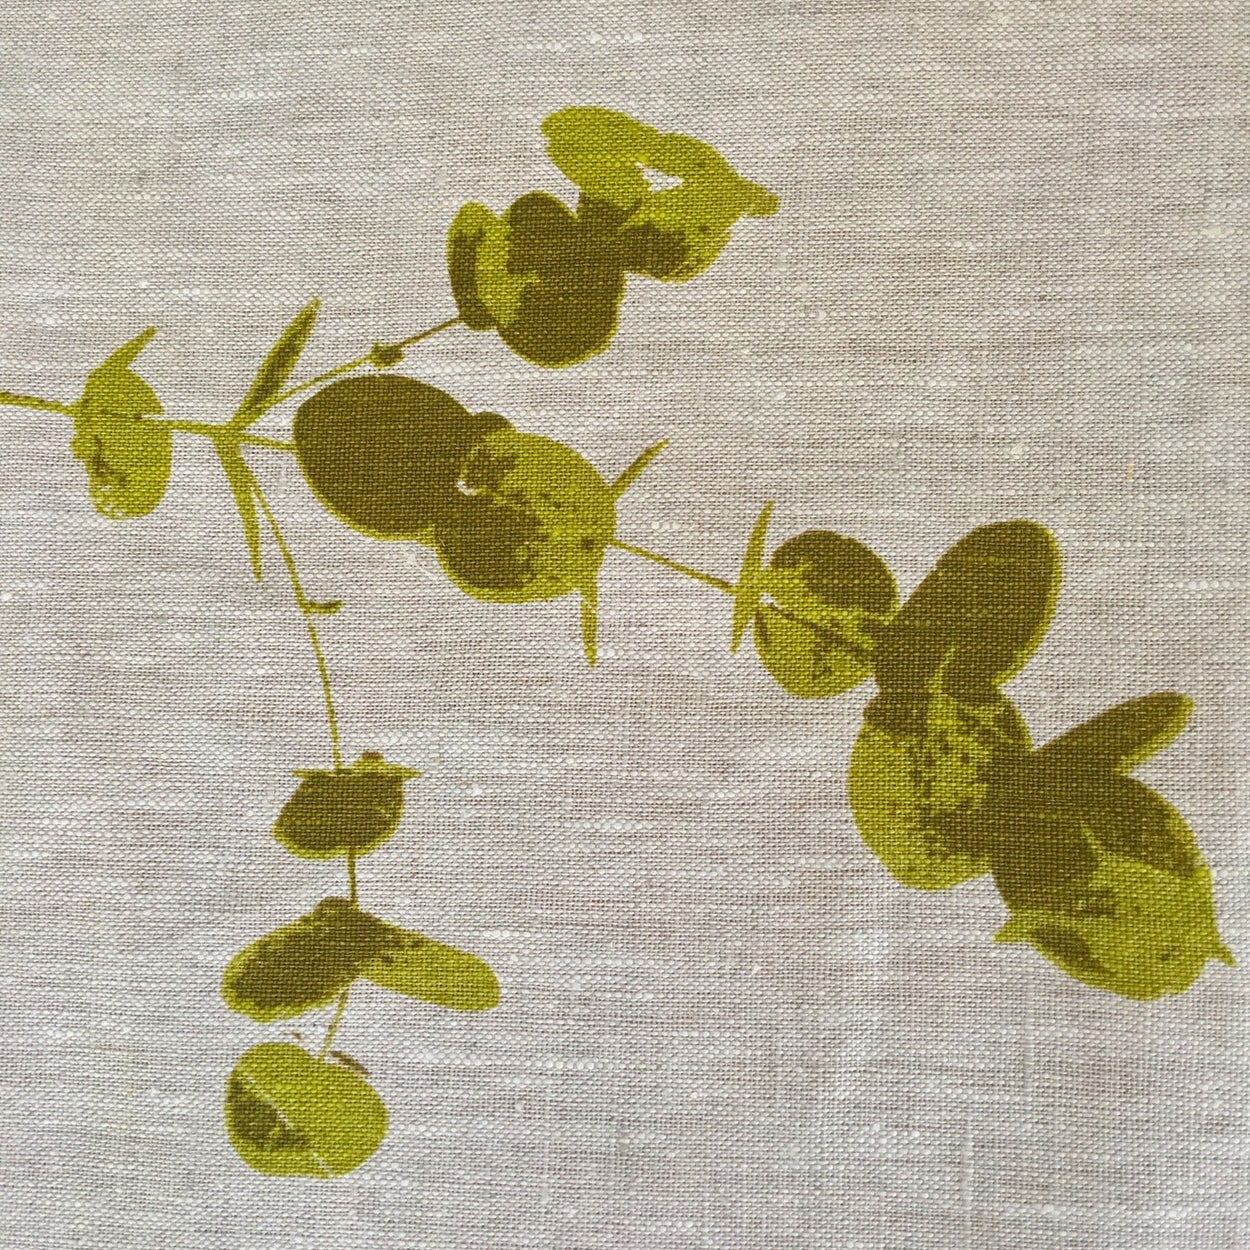 Photo of gum leaves screenprinted on a cushion cover in close-up.